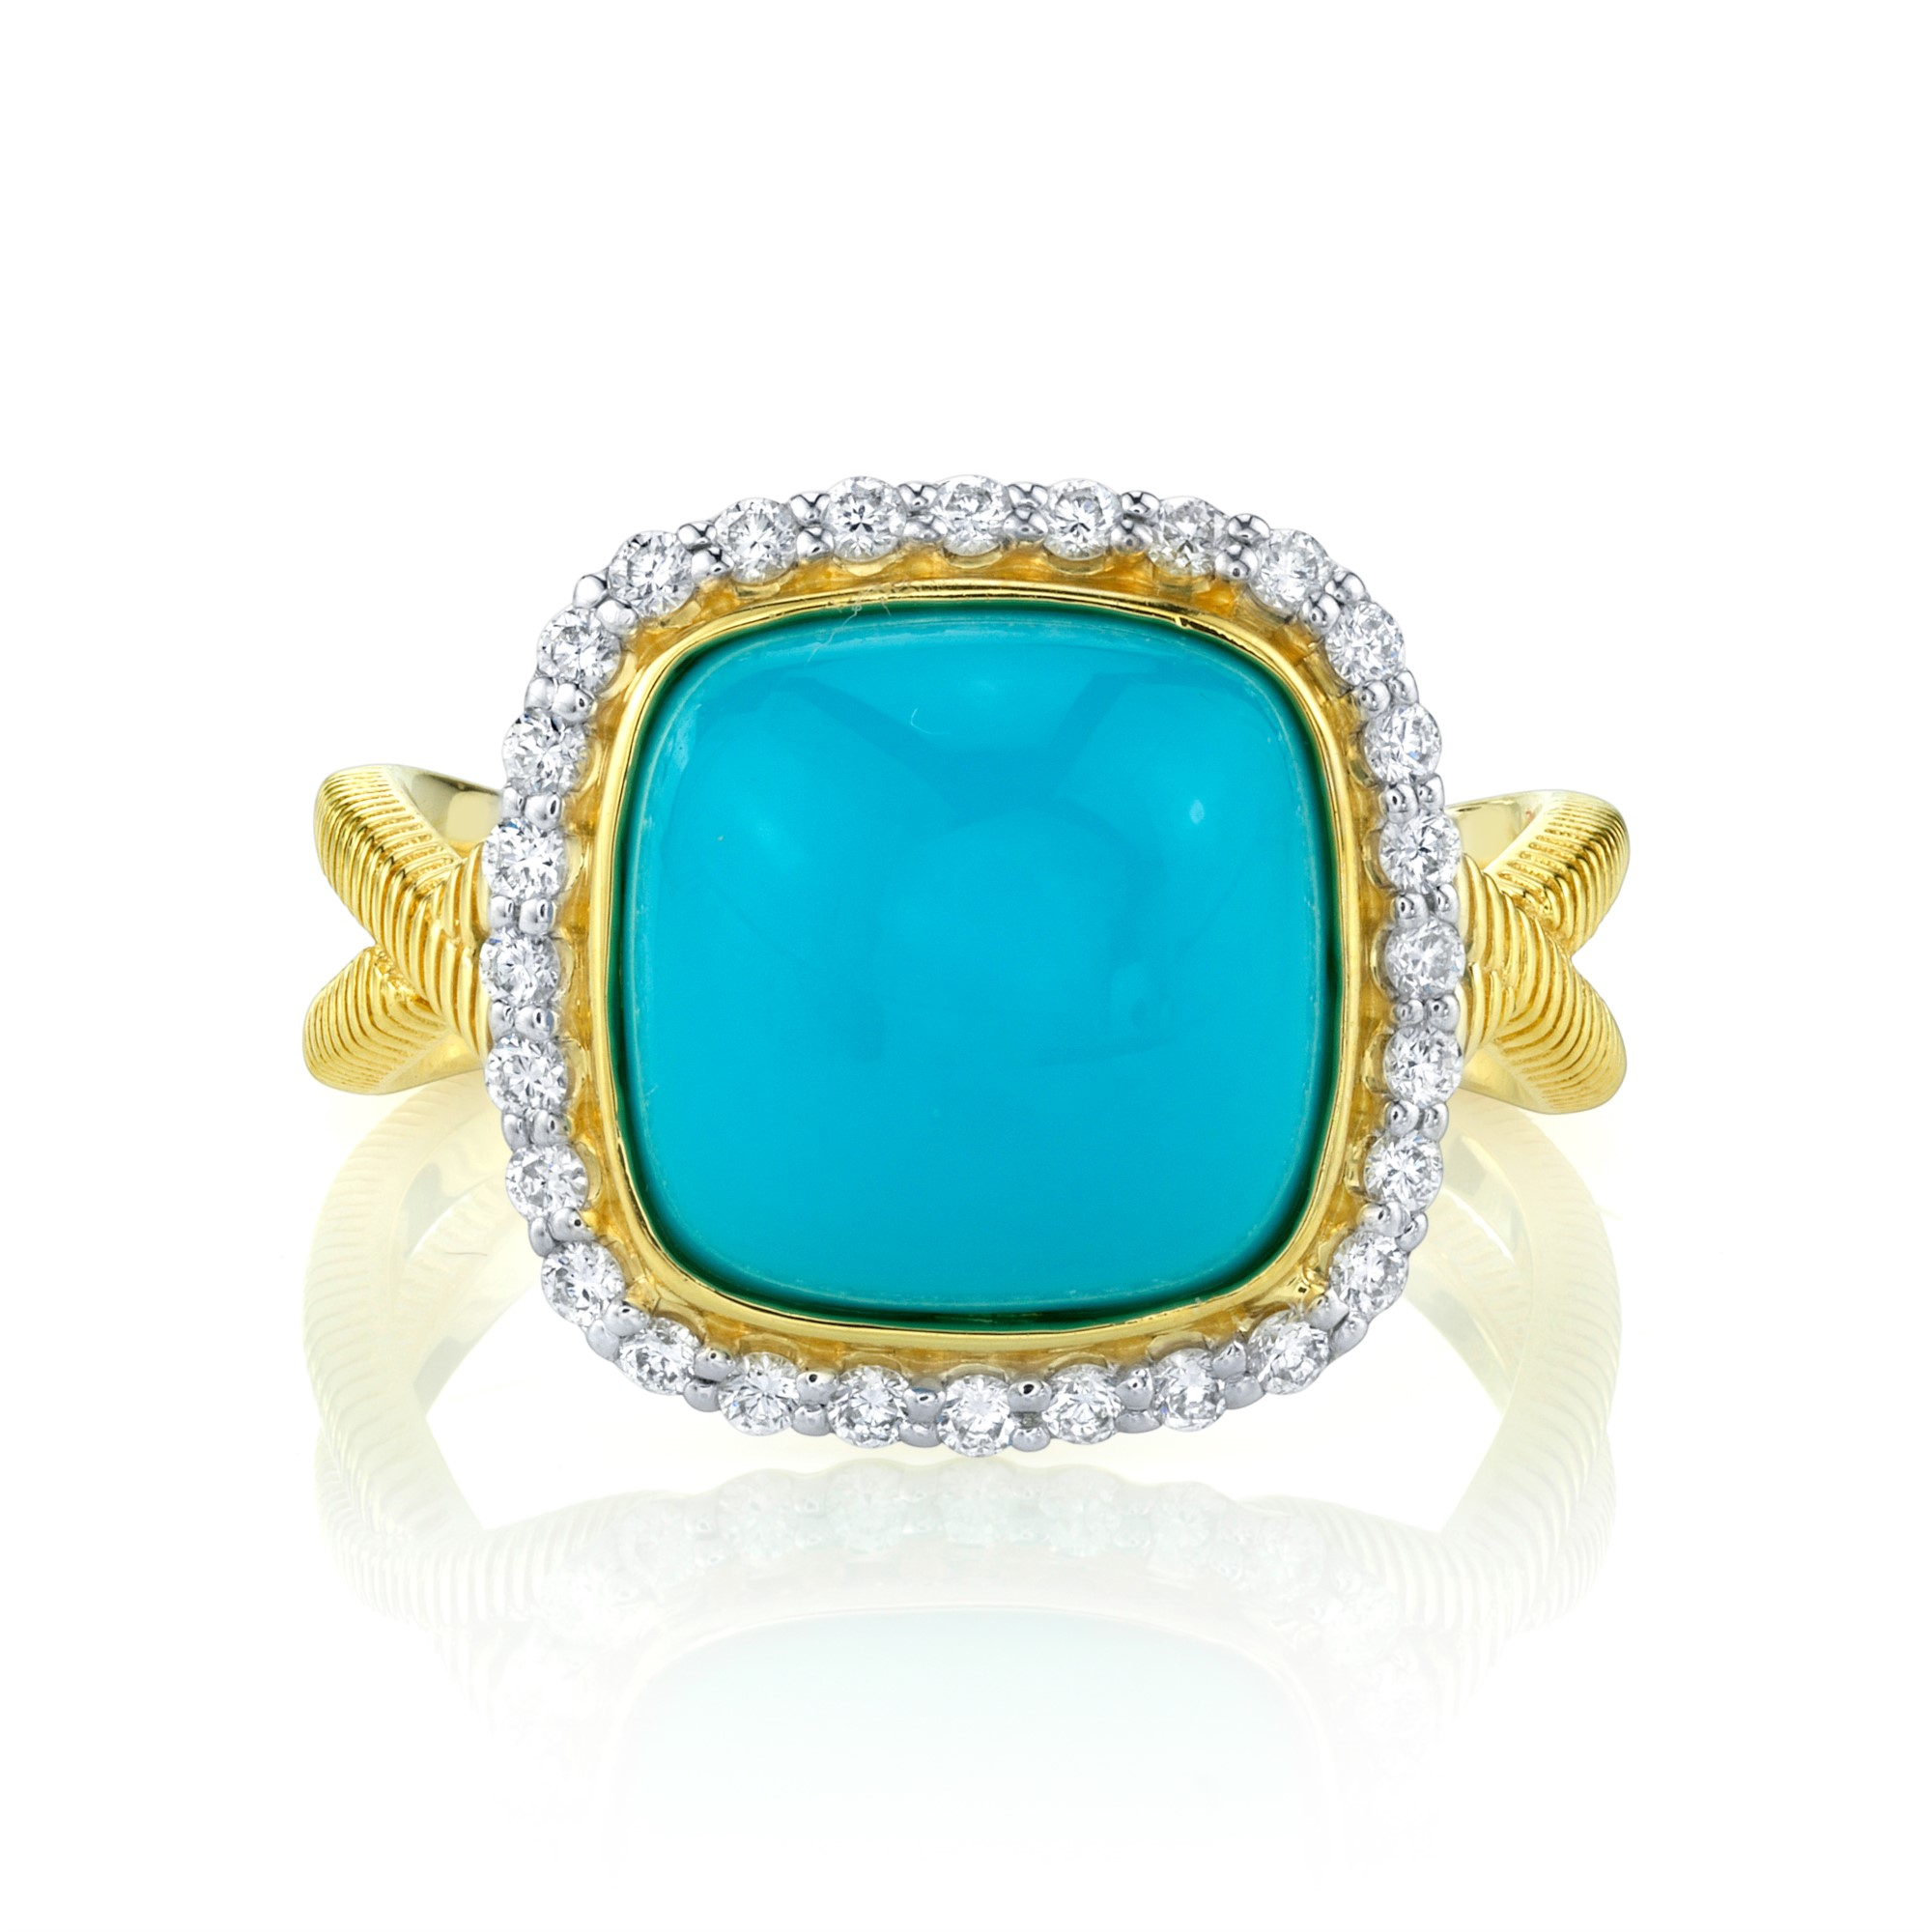 Sloane Street 18K Yellow Gold   Turquoise Gold Ring with Stones R012-TQ-WDCB-Y